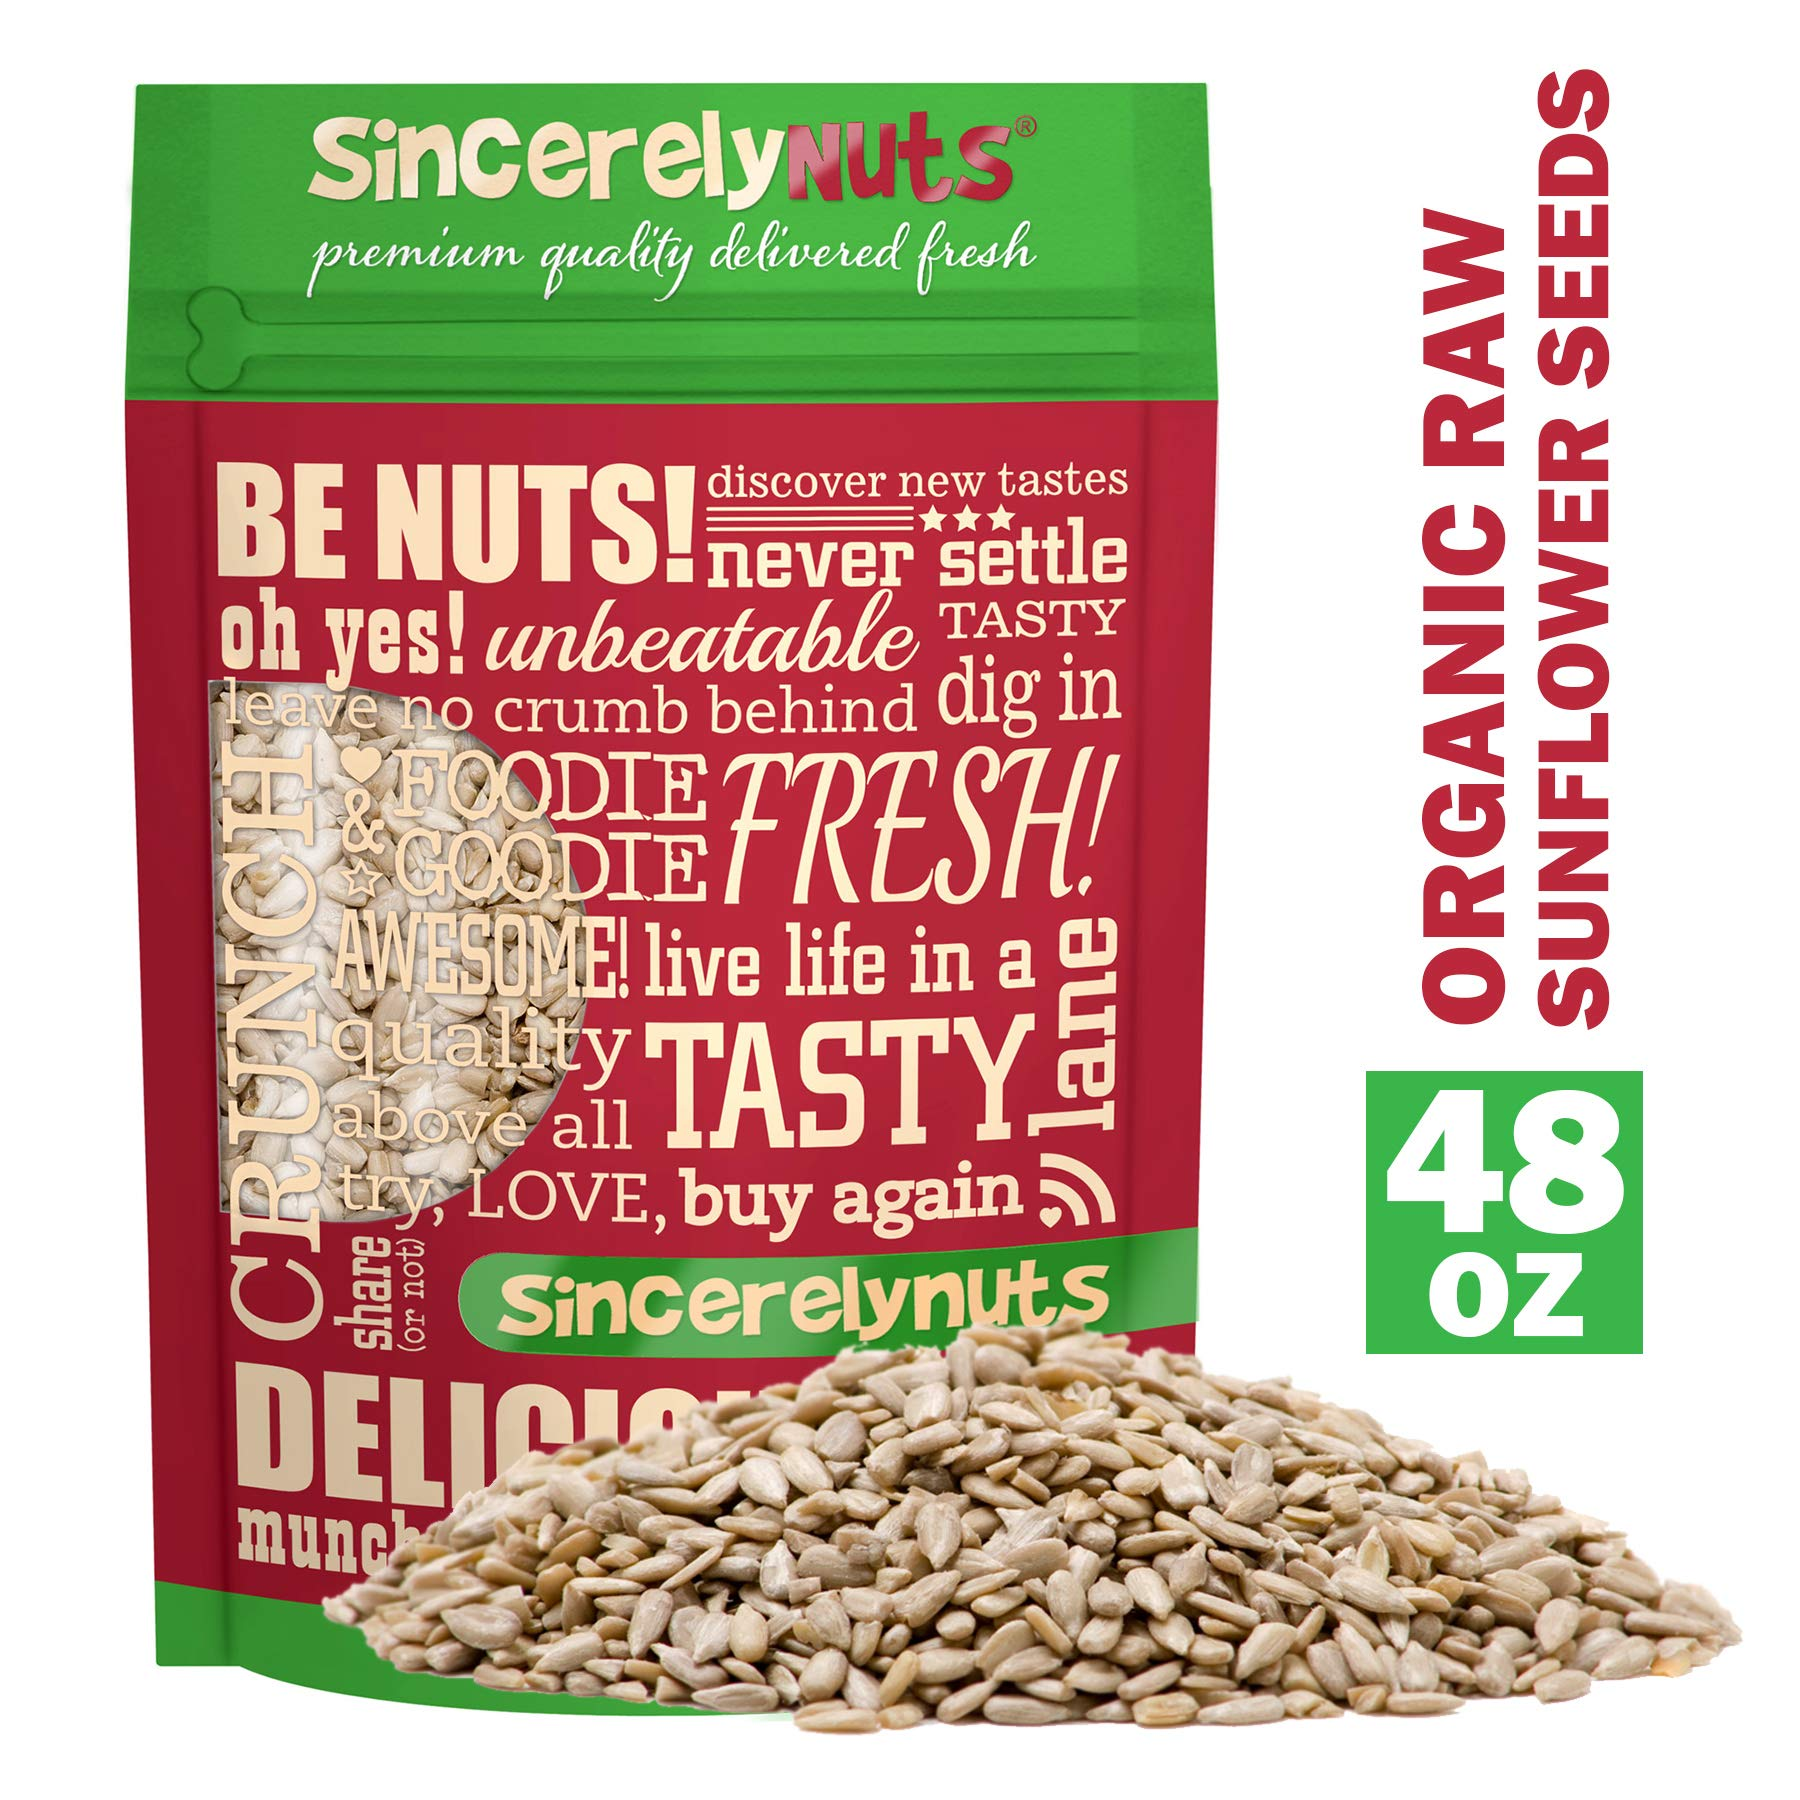 Sincerely Nuts Organic Sunflower Seed Kernels Raw (No Shell) (3lb bag) | Nutritious Antioxidant Rich Superfood Snack | Source of Protein, Fiber, Essential Vitamins & Minerals | Vegan and Gluten Free by Sincerely Nuts